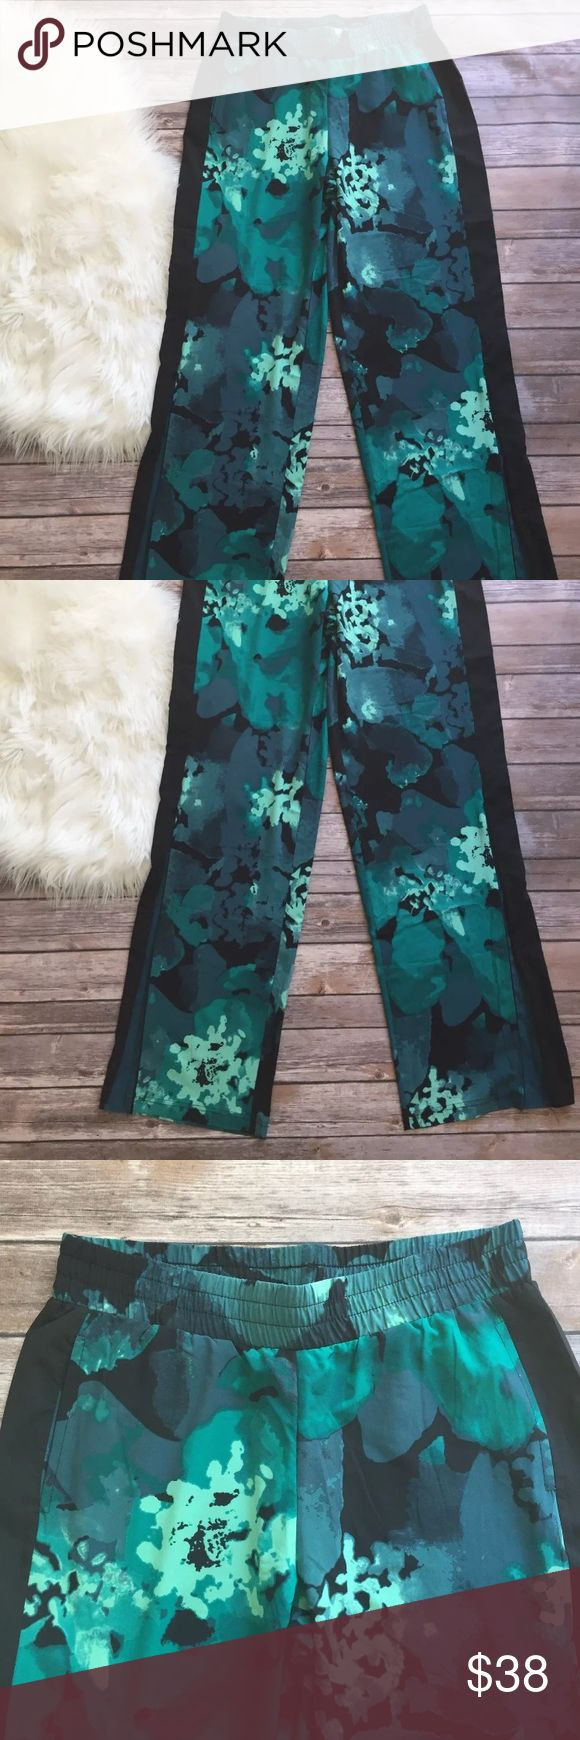 🆕 Fabletics Tropical Floral Fitness Pants S Like new! Super breathable material. Very light. Bottom flares can be zipped closed or opened. Inseam measures 34 inches. Fabletics Pants Track Pants & Joggers